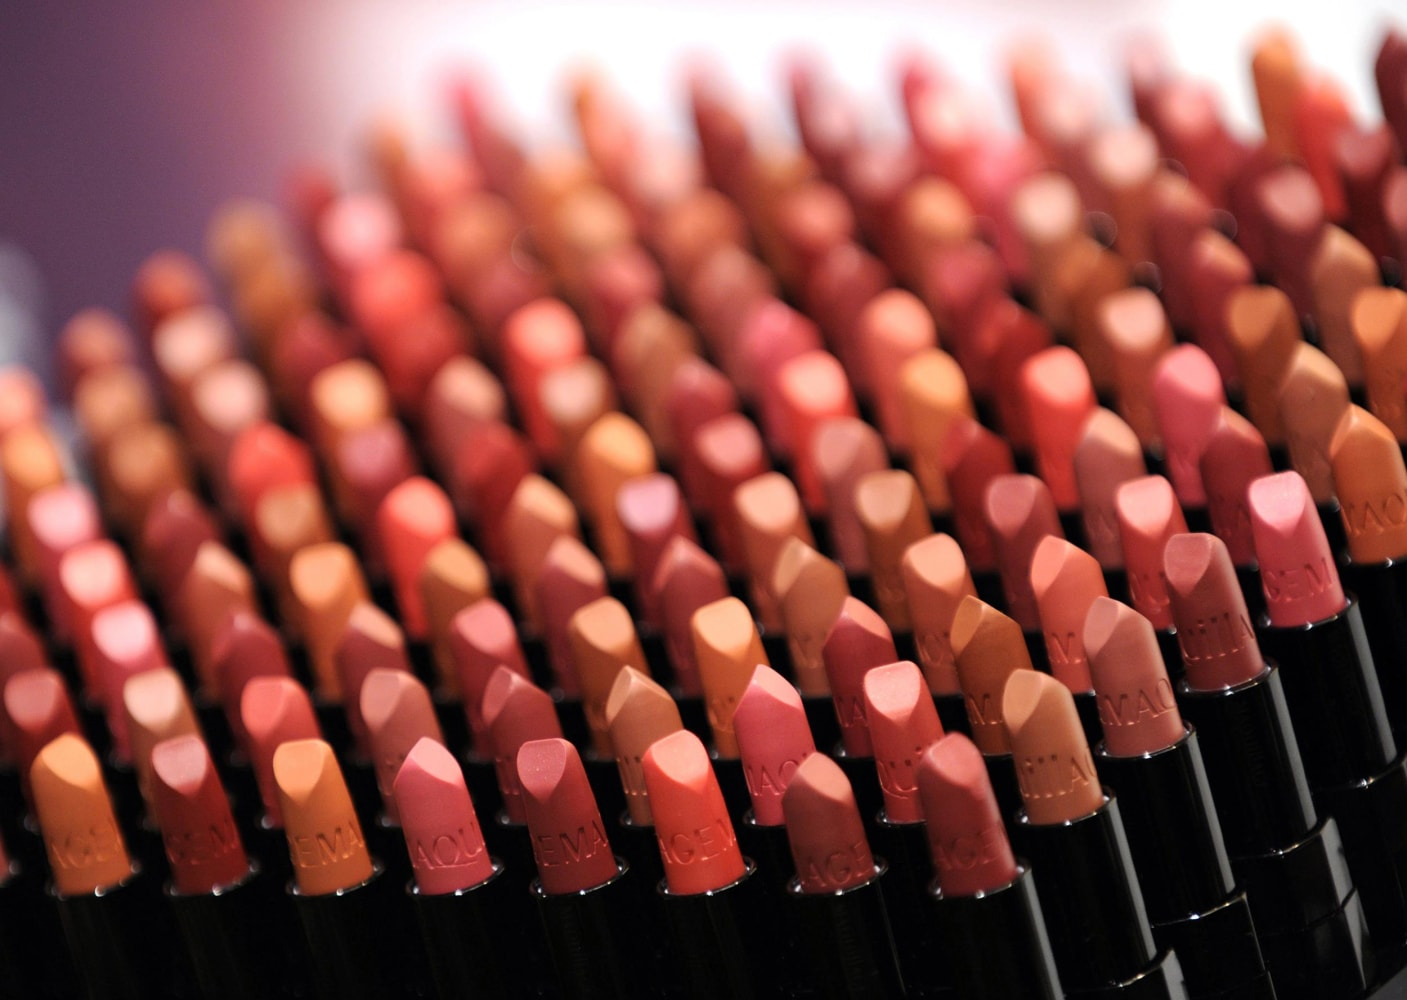 Limit Lead Levels in Lipstick, Other Cosmetics, FDA says